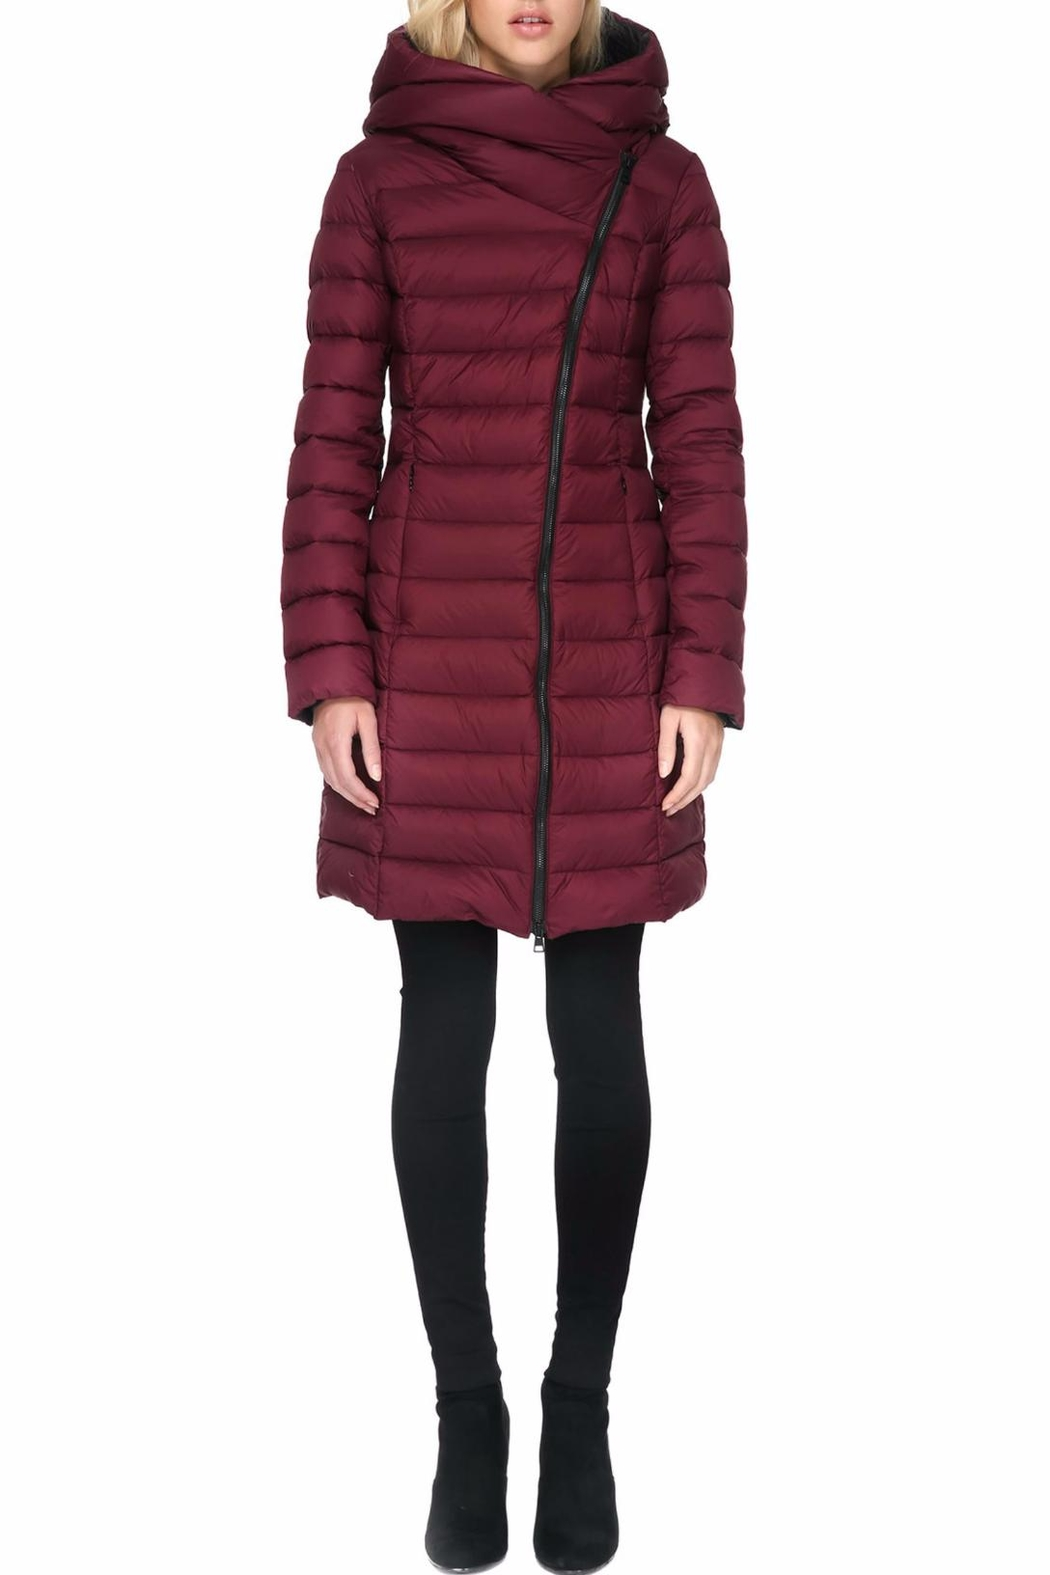 Soia & Kyo Karelle Light Down Coat - Front Cropped Image